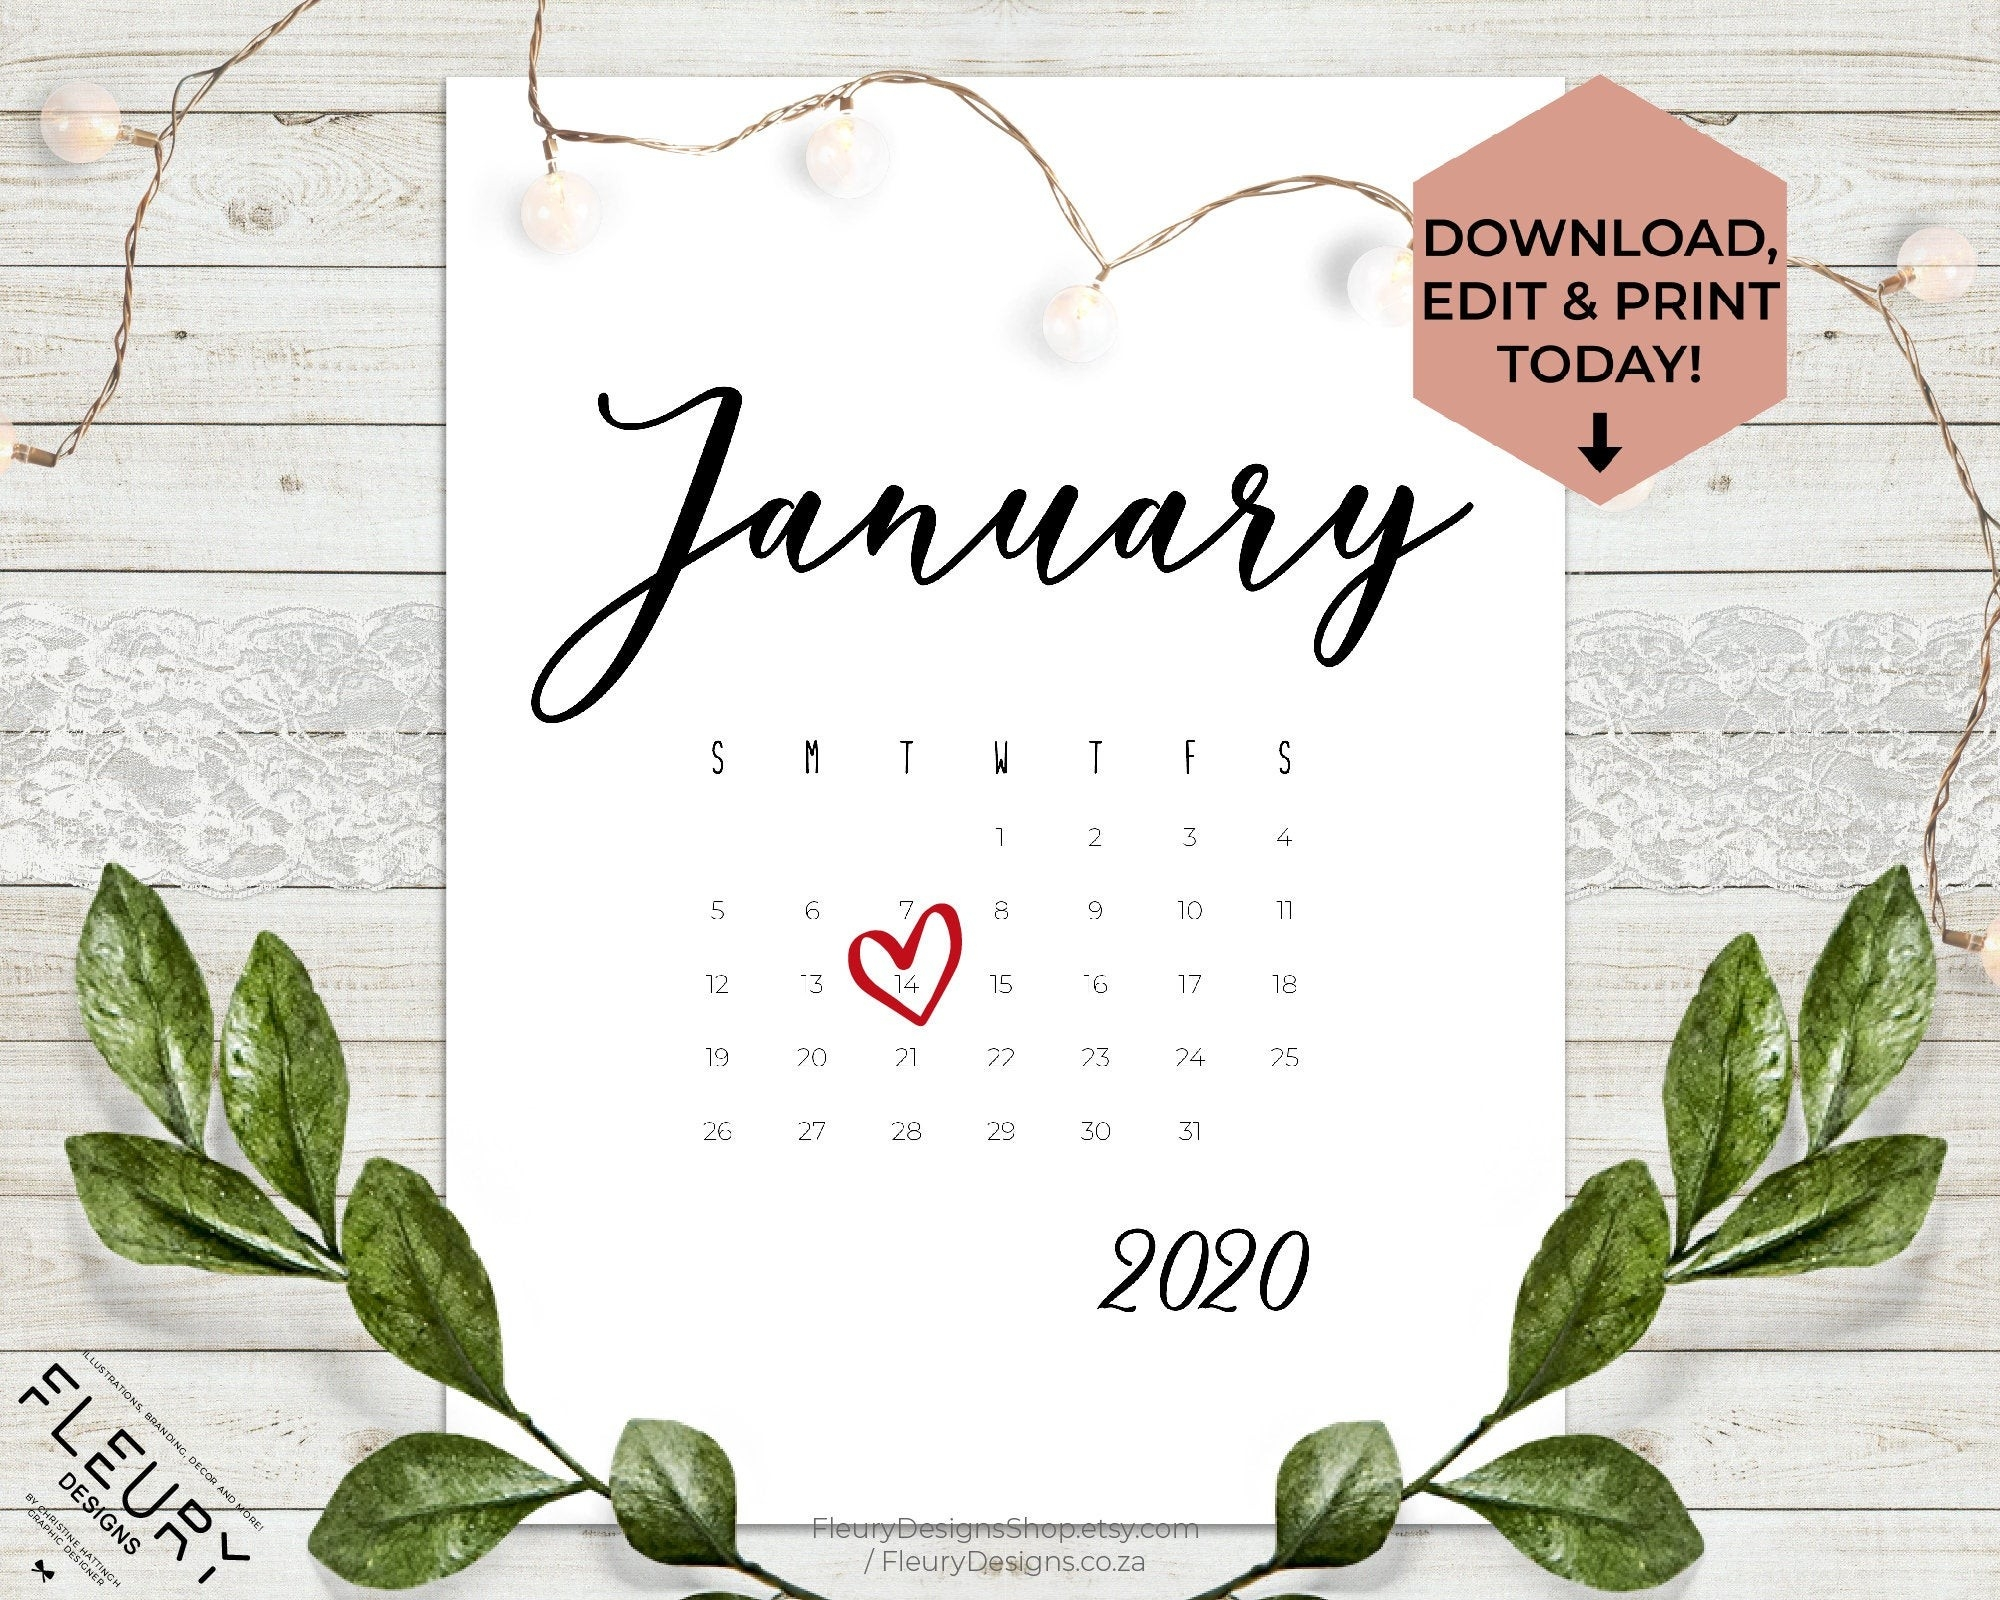 January 2020 Custom Editable Pregnancy Announcement Calendar - Social Media  Baby Announcement - Baby Due Date Printable Calendar - Due Date-January 2020 Calendar Baby Announcement